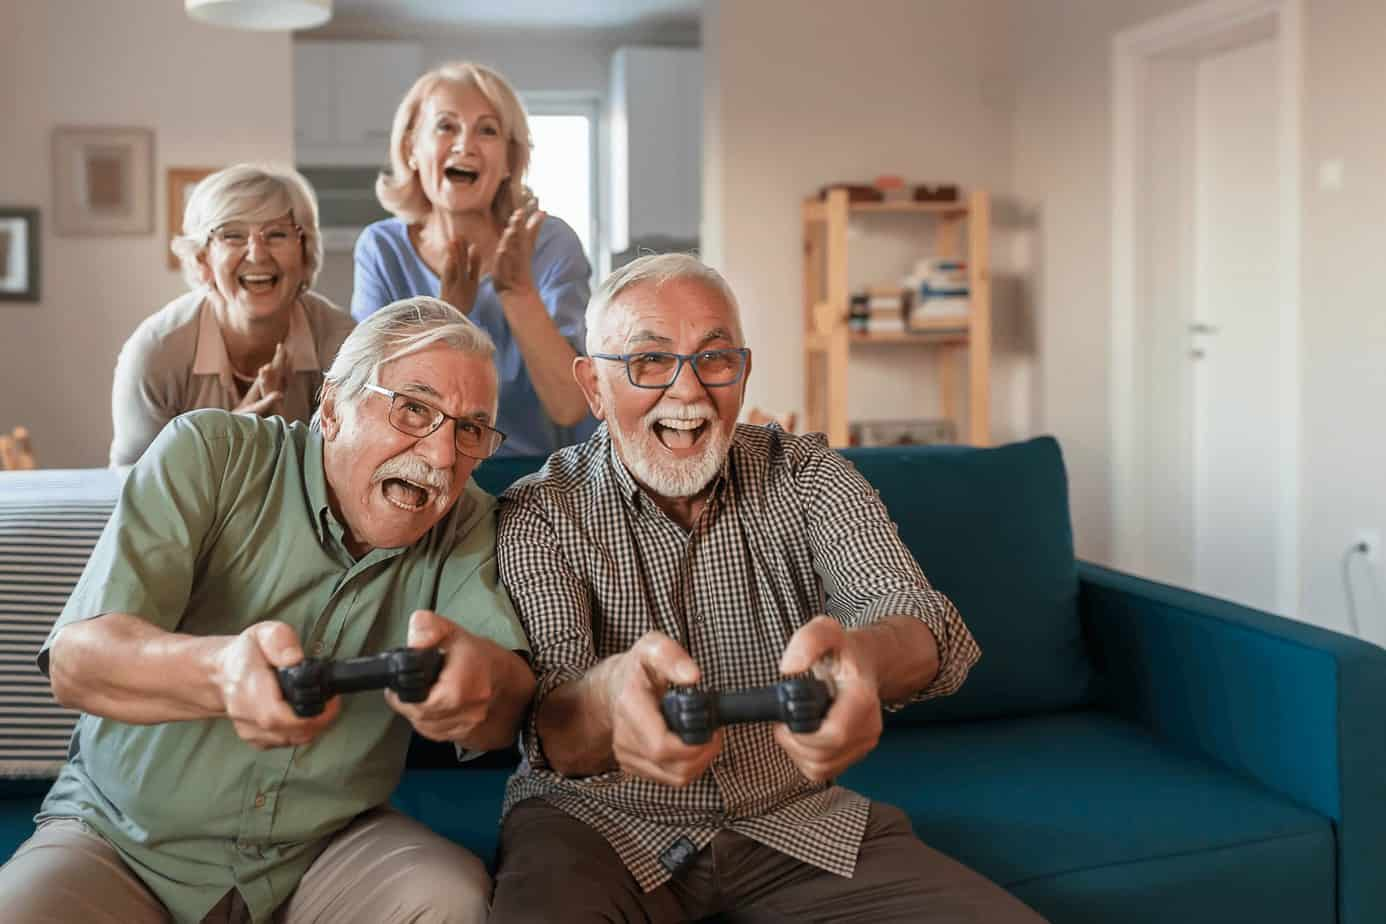 seniors playing play station in the celebrant's house, one of the best 75th birthday ideas